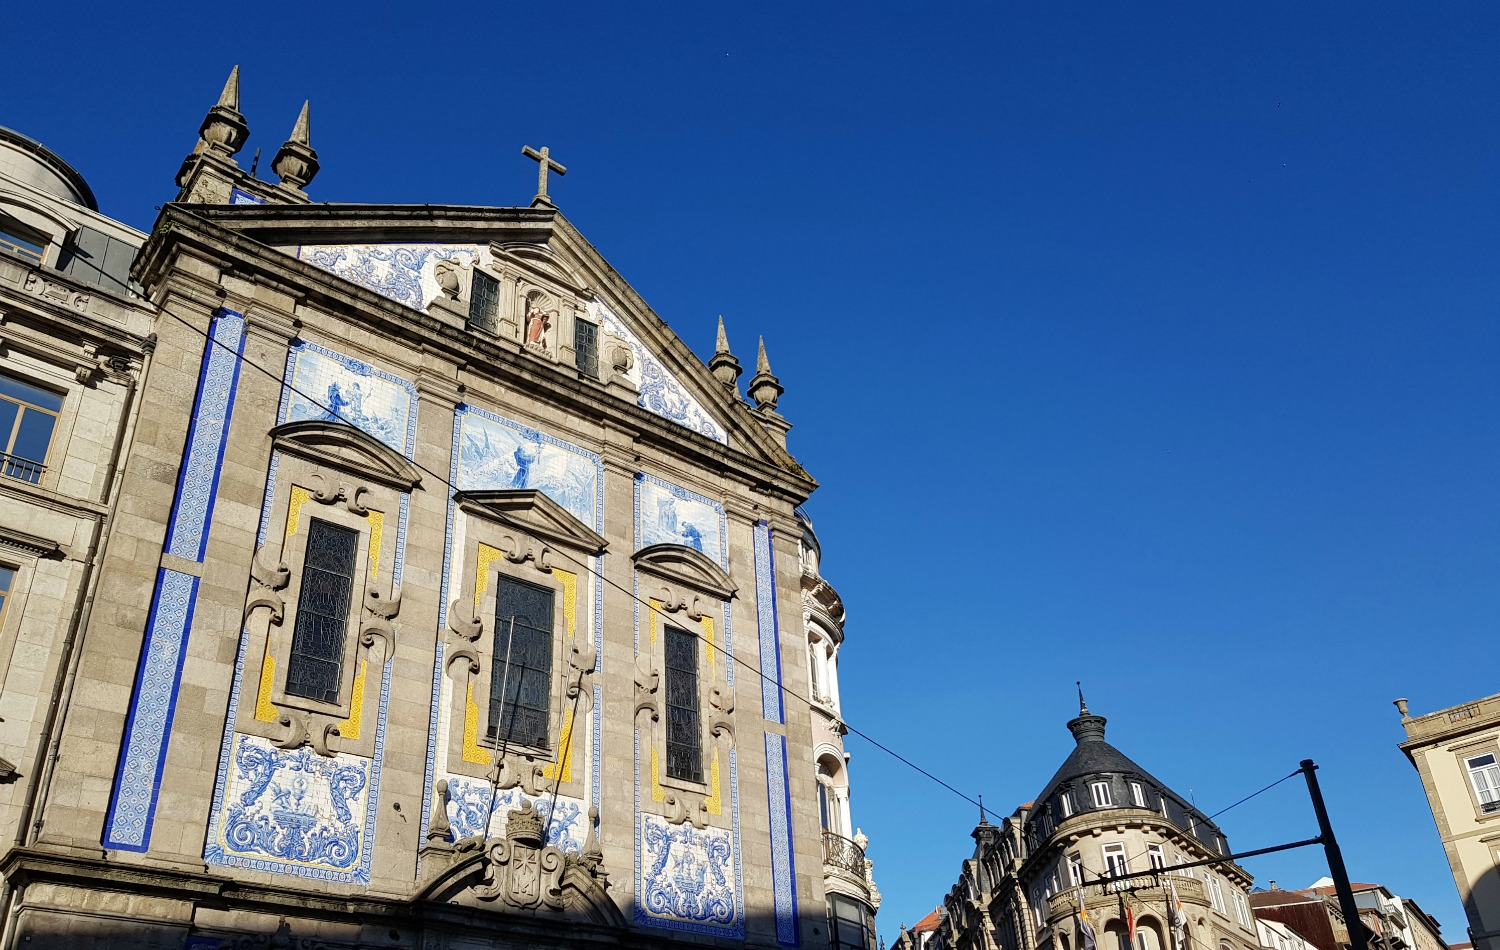 Tiled church against a blue sky in Porto - my Porto travel tips and lessons for visiting with kids